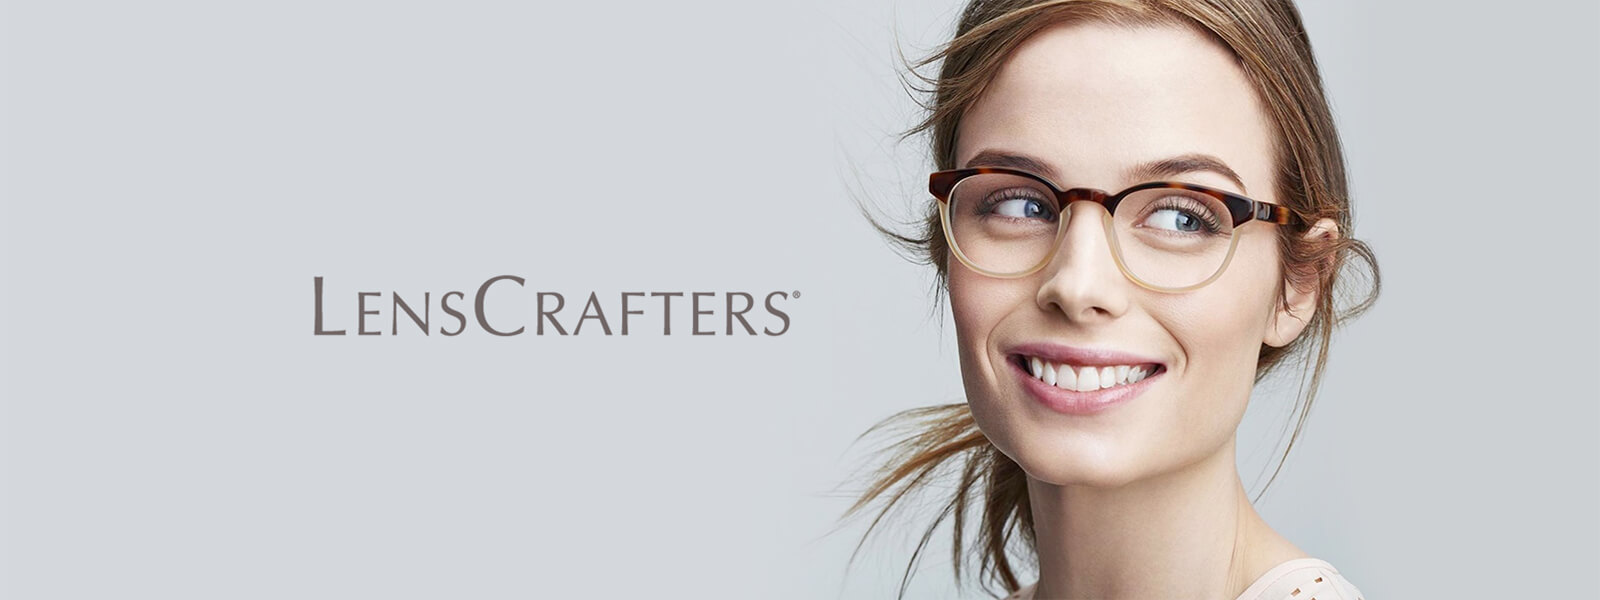 lens-crafters-header